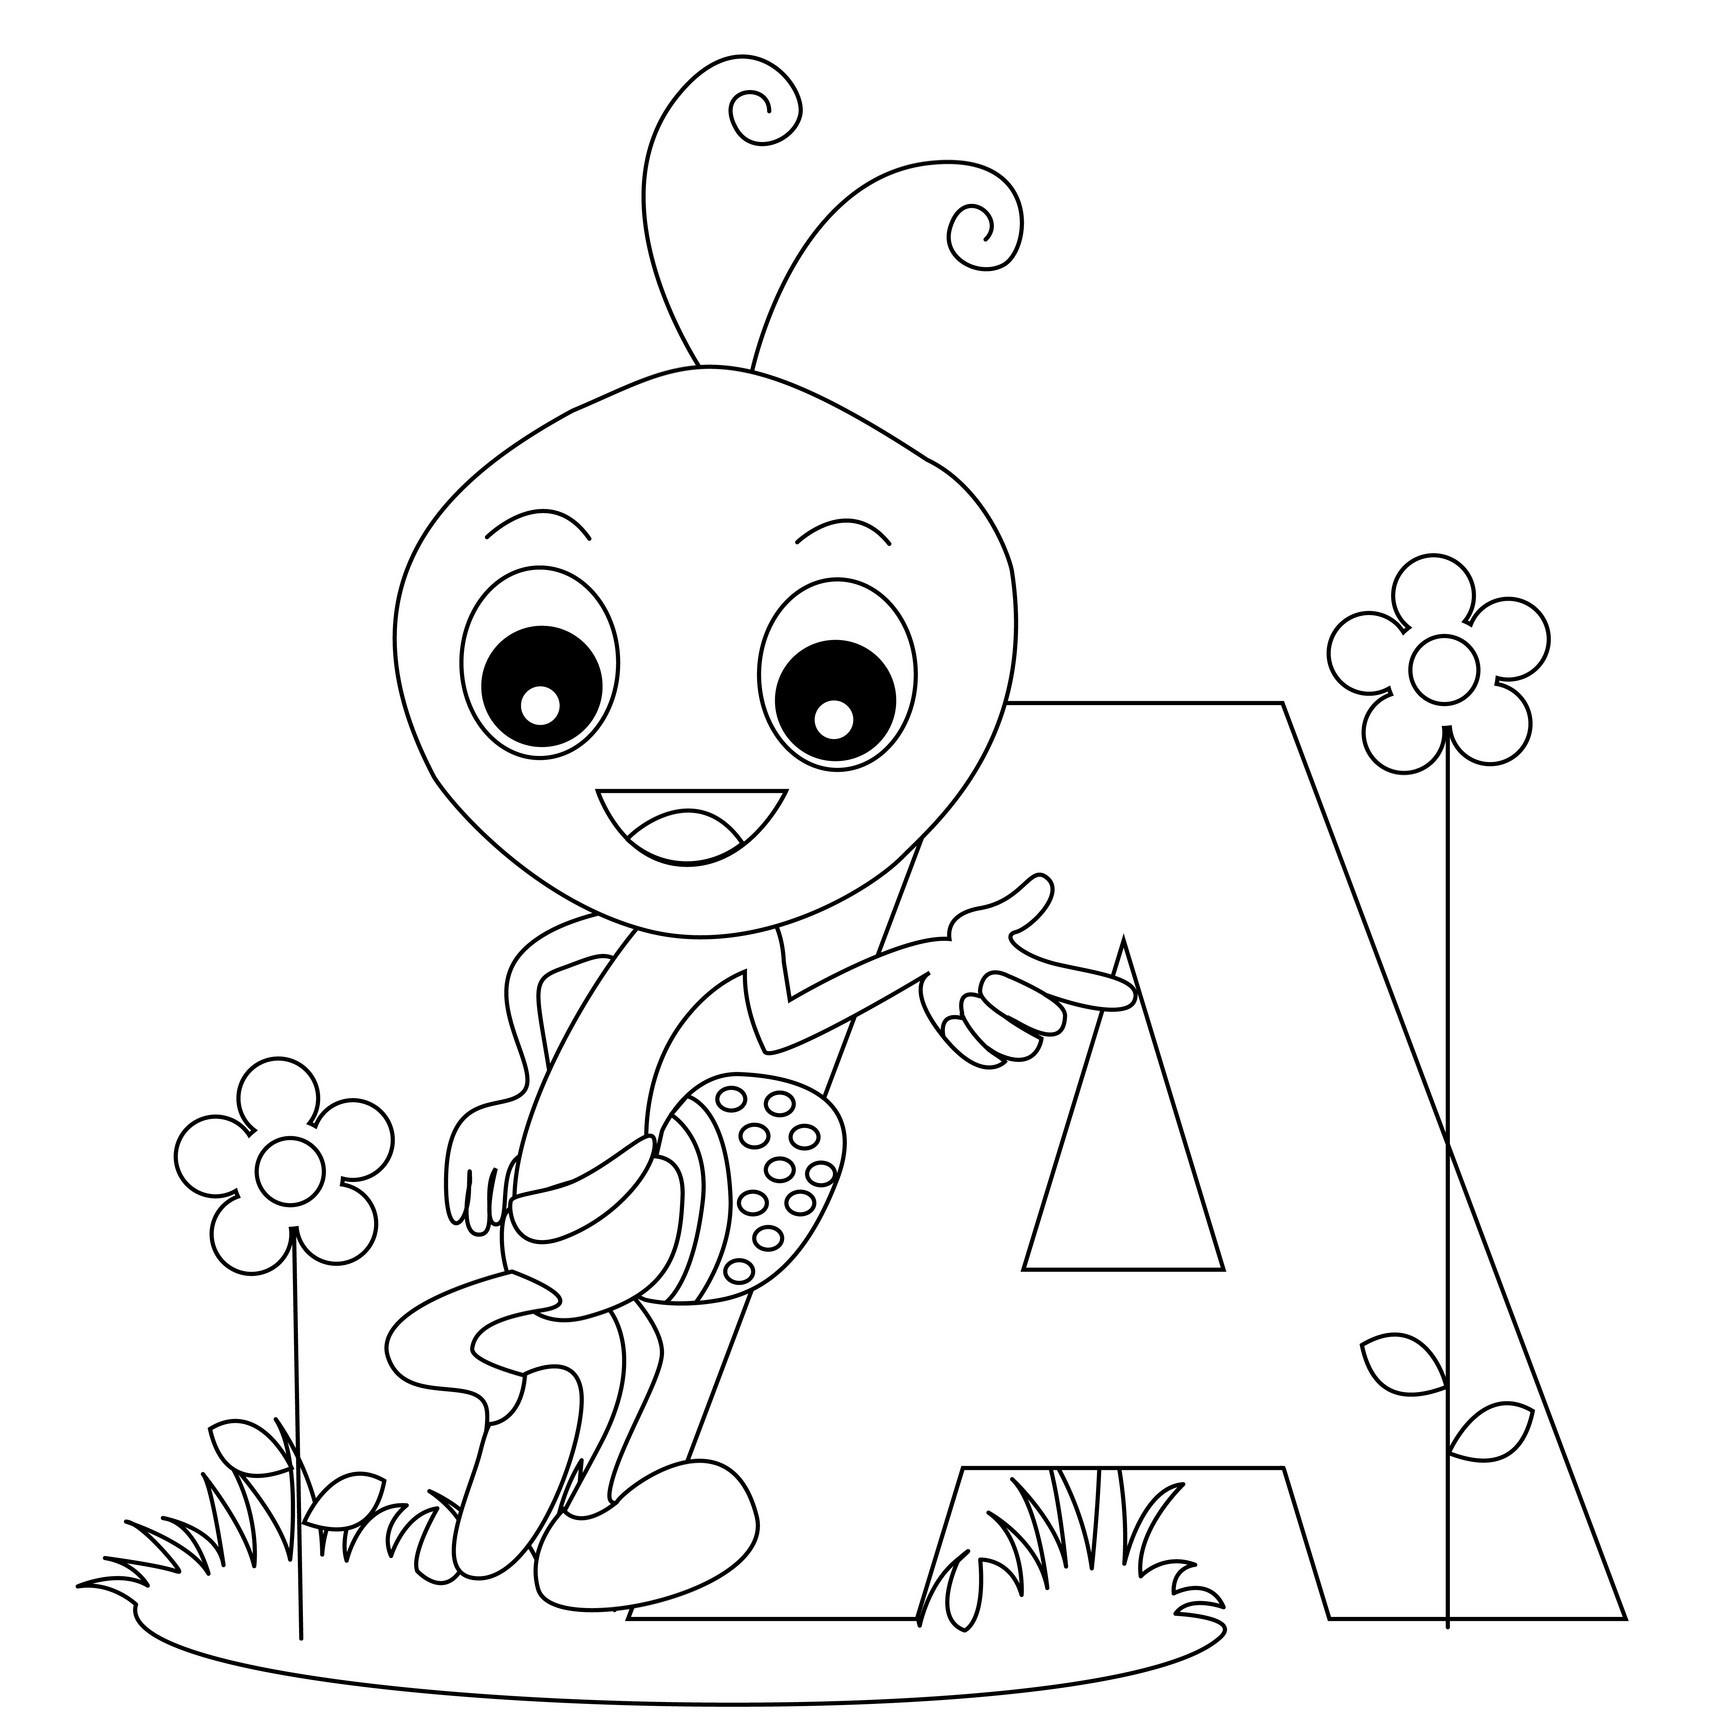 coloring pages abc - free printable alphabet coloring pages for kids best coloring pages for kids